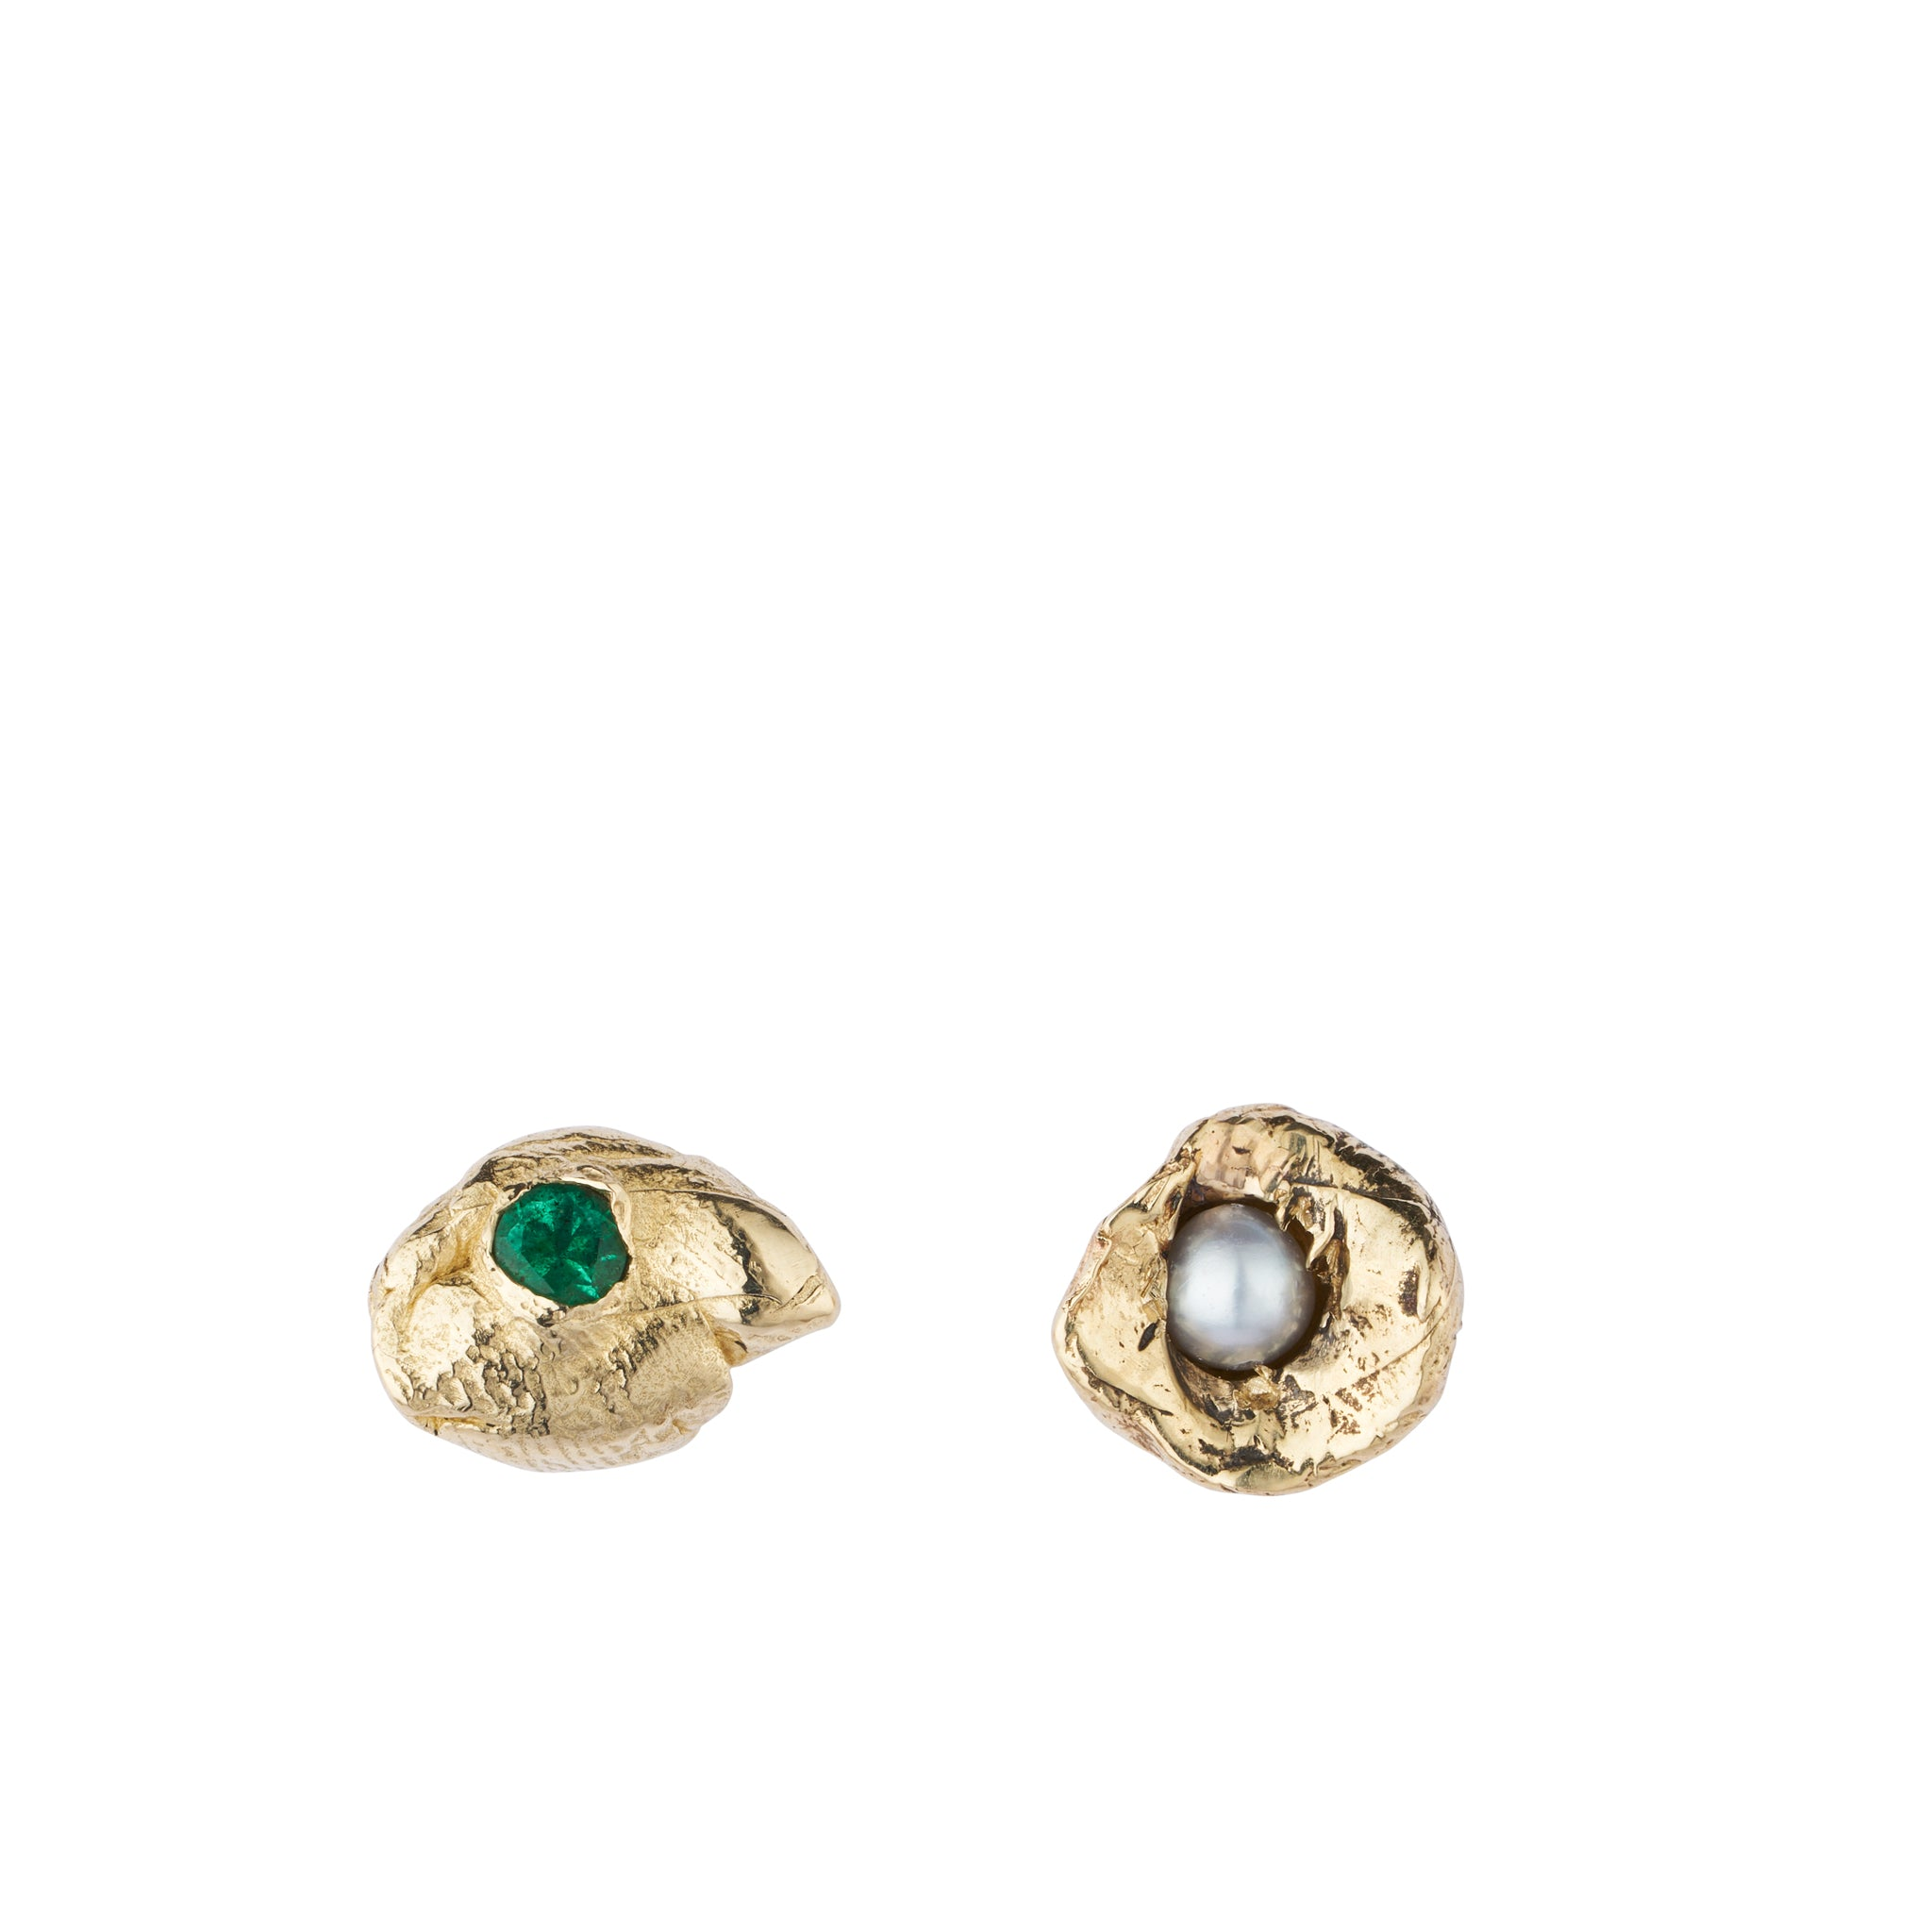 ALICE WAESE ROWENA MISMATCHED EARRINGS | EMERALD AND PEARL GOLD ASYMMETRICAL STUD EARRINGS | AETLA JEWELLERY EDINBURGH